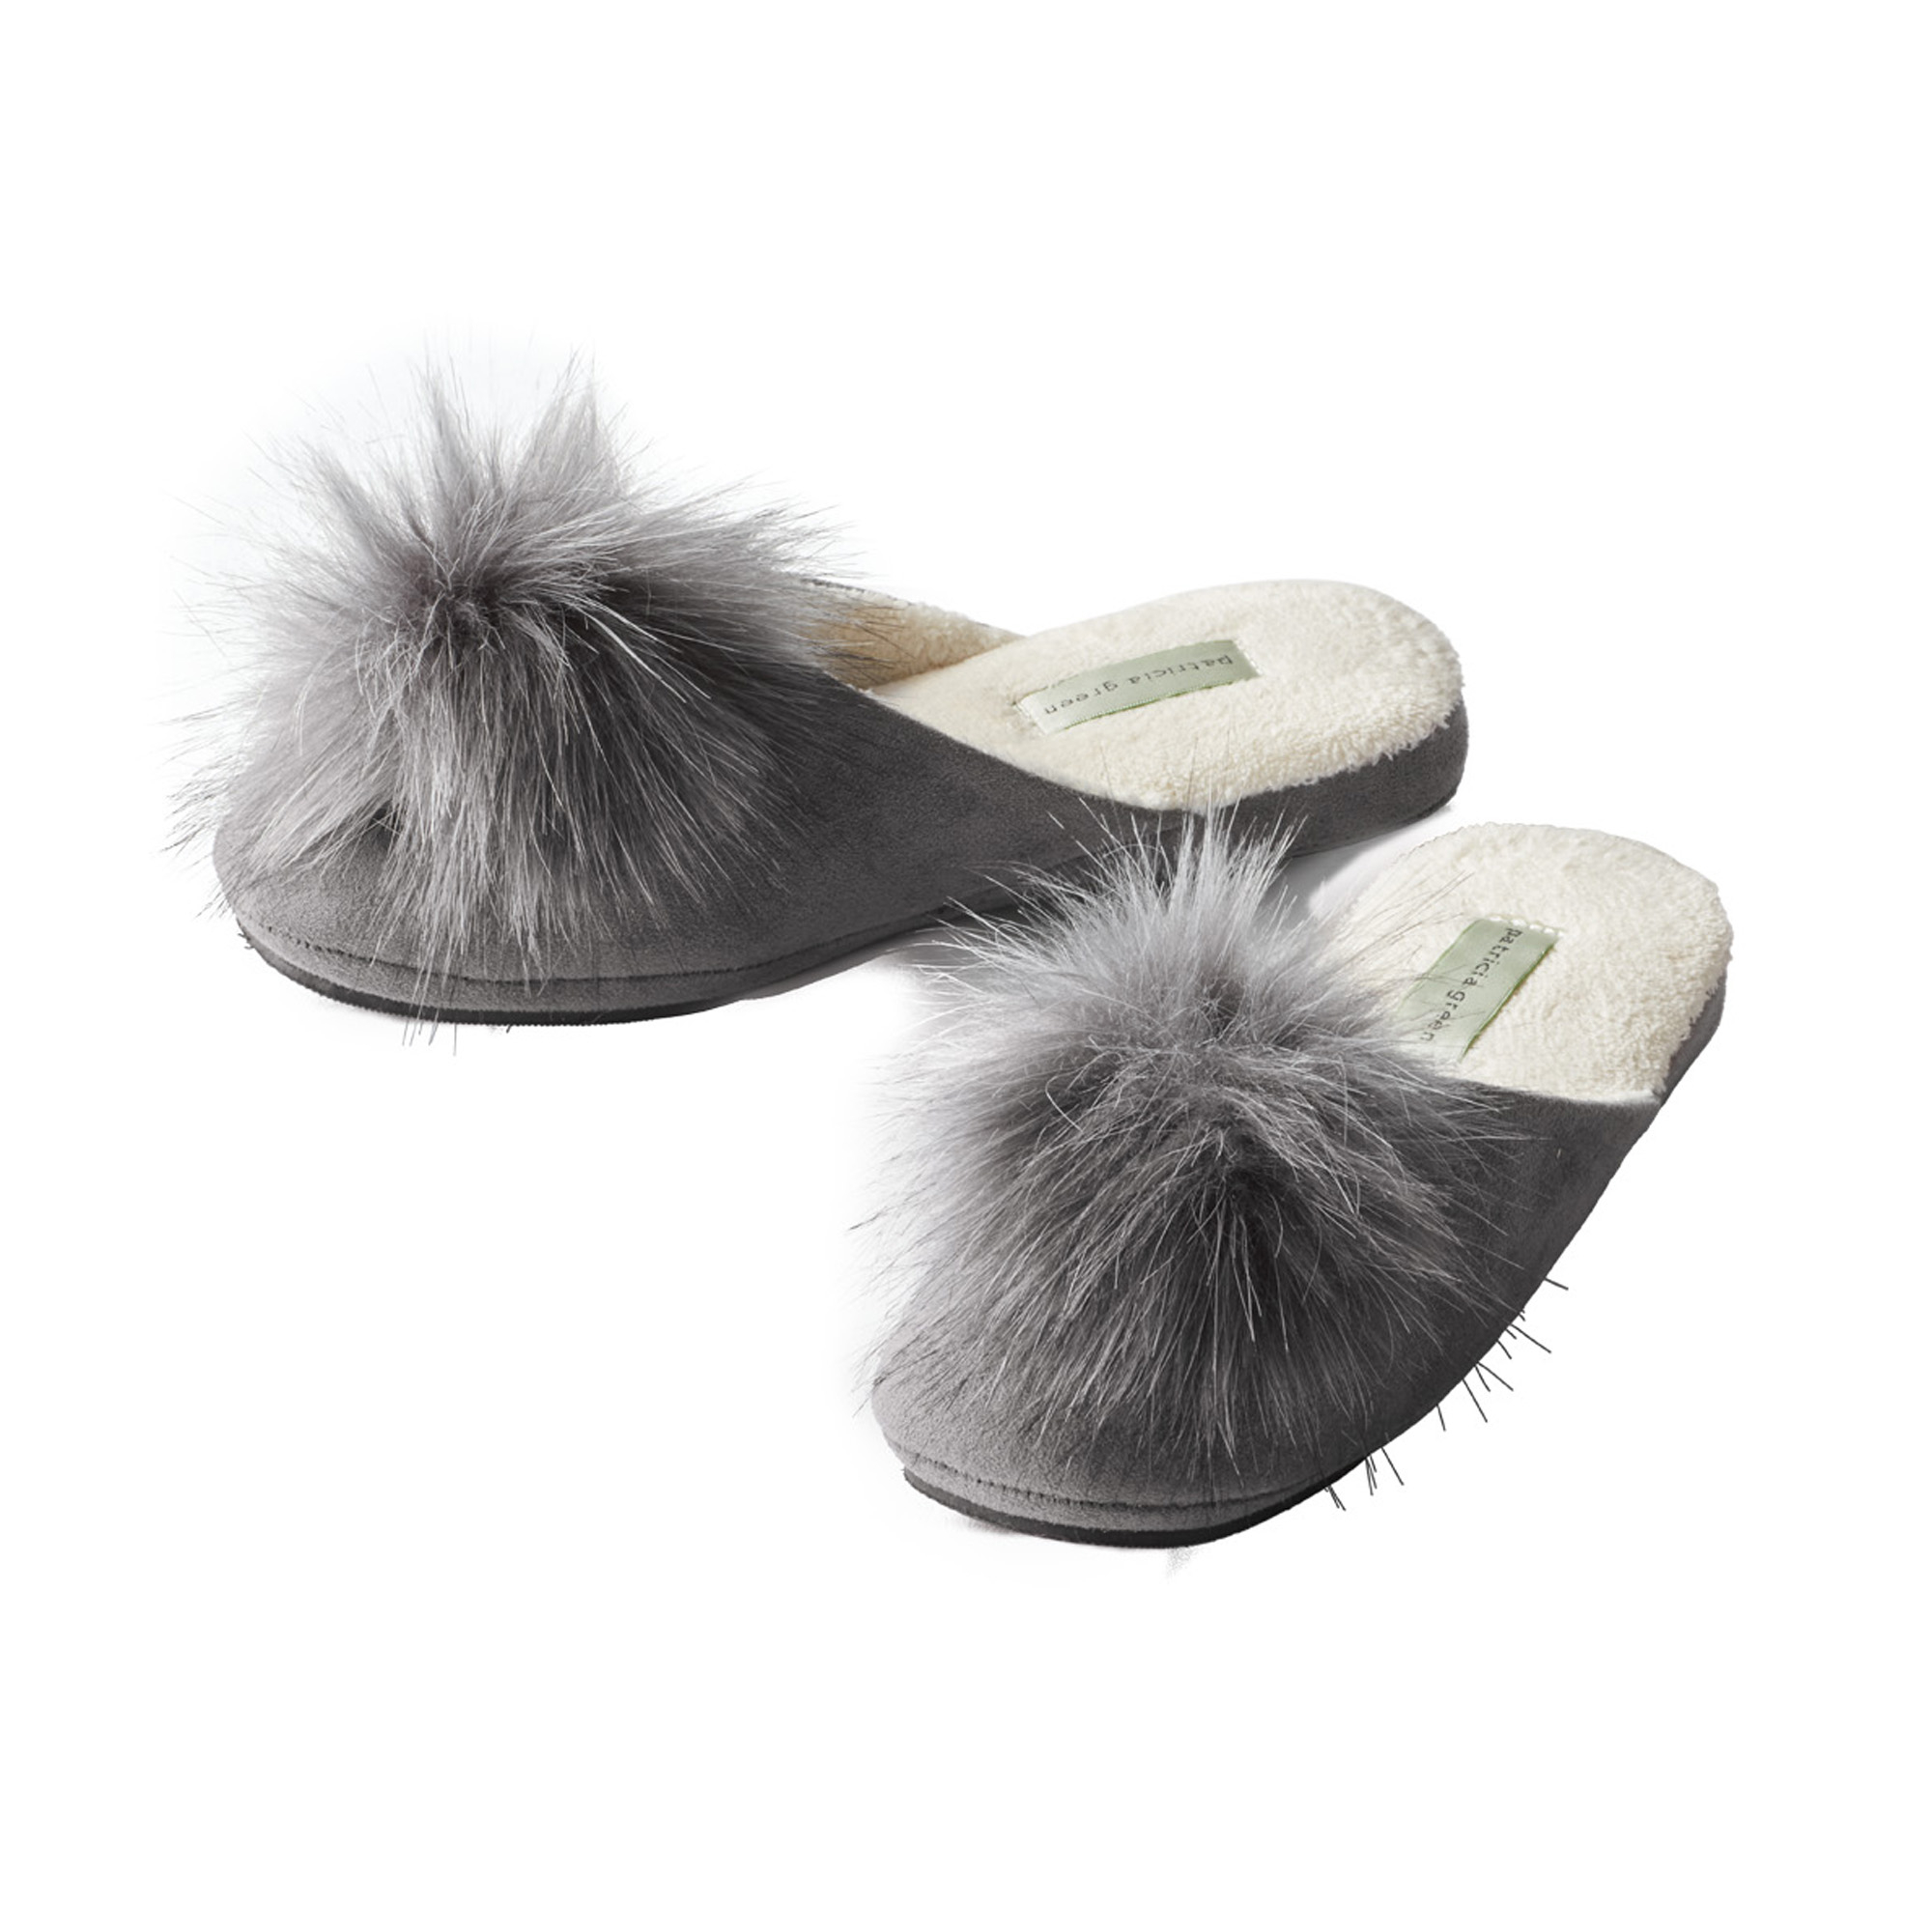 Patricia Green Pouf Slippers